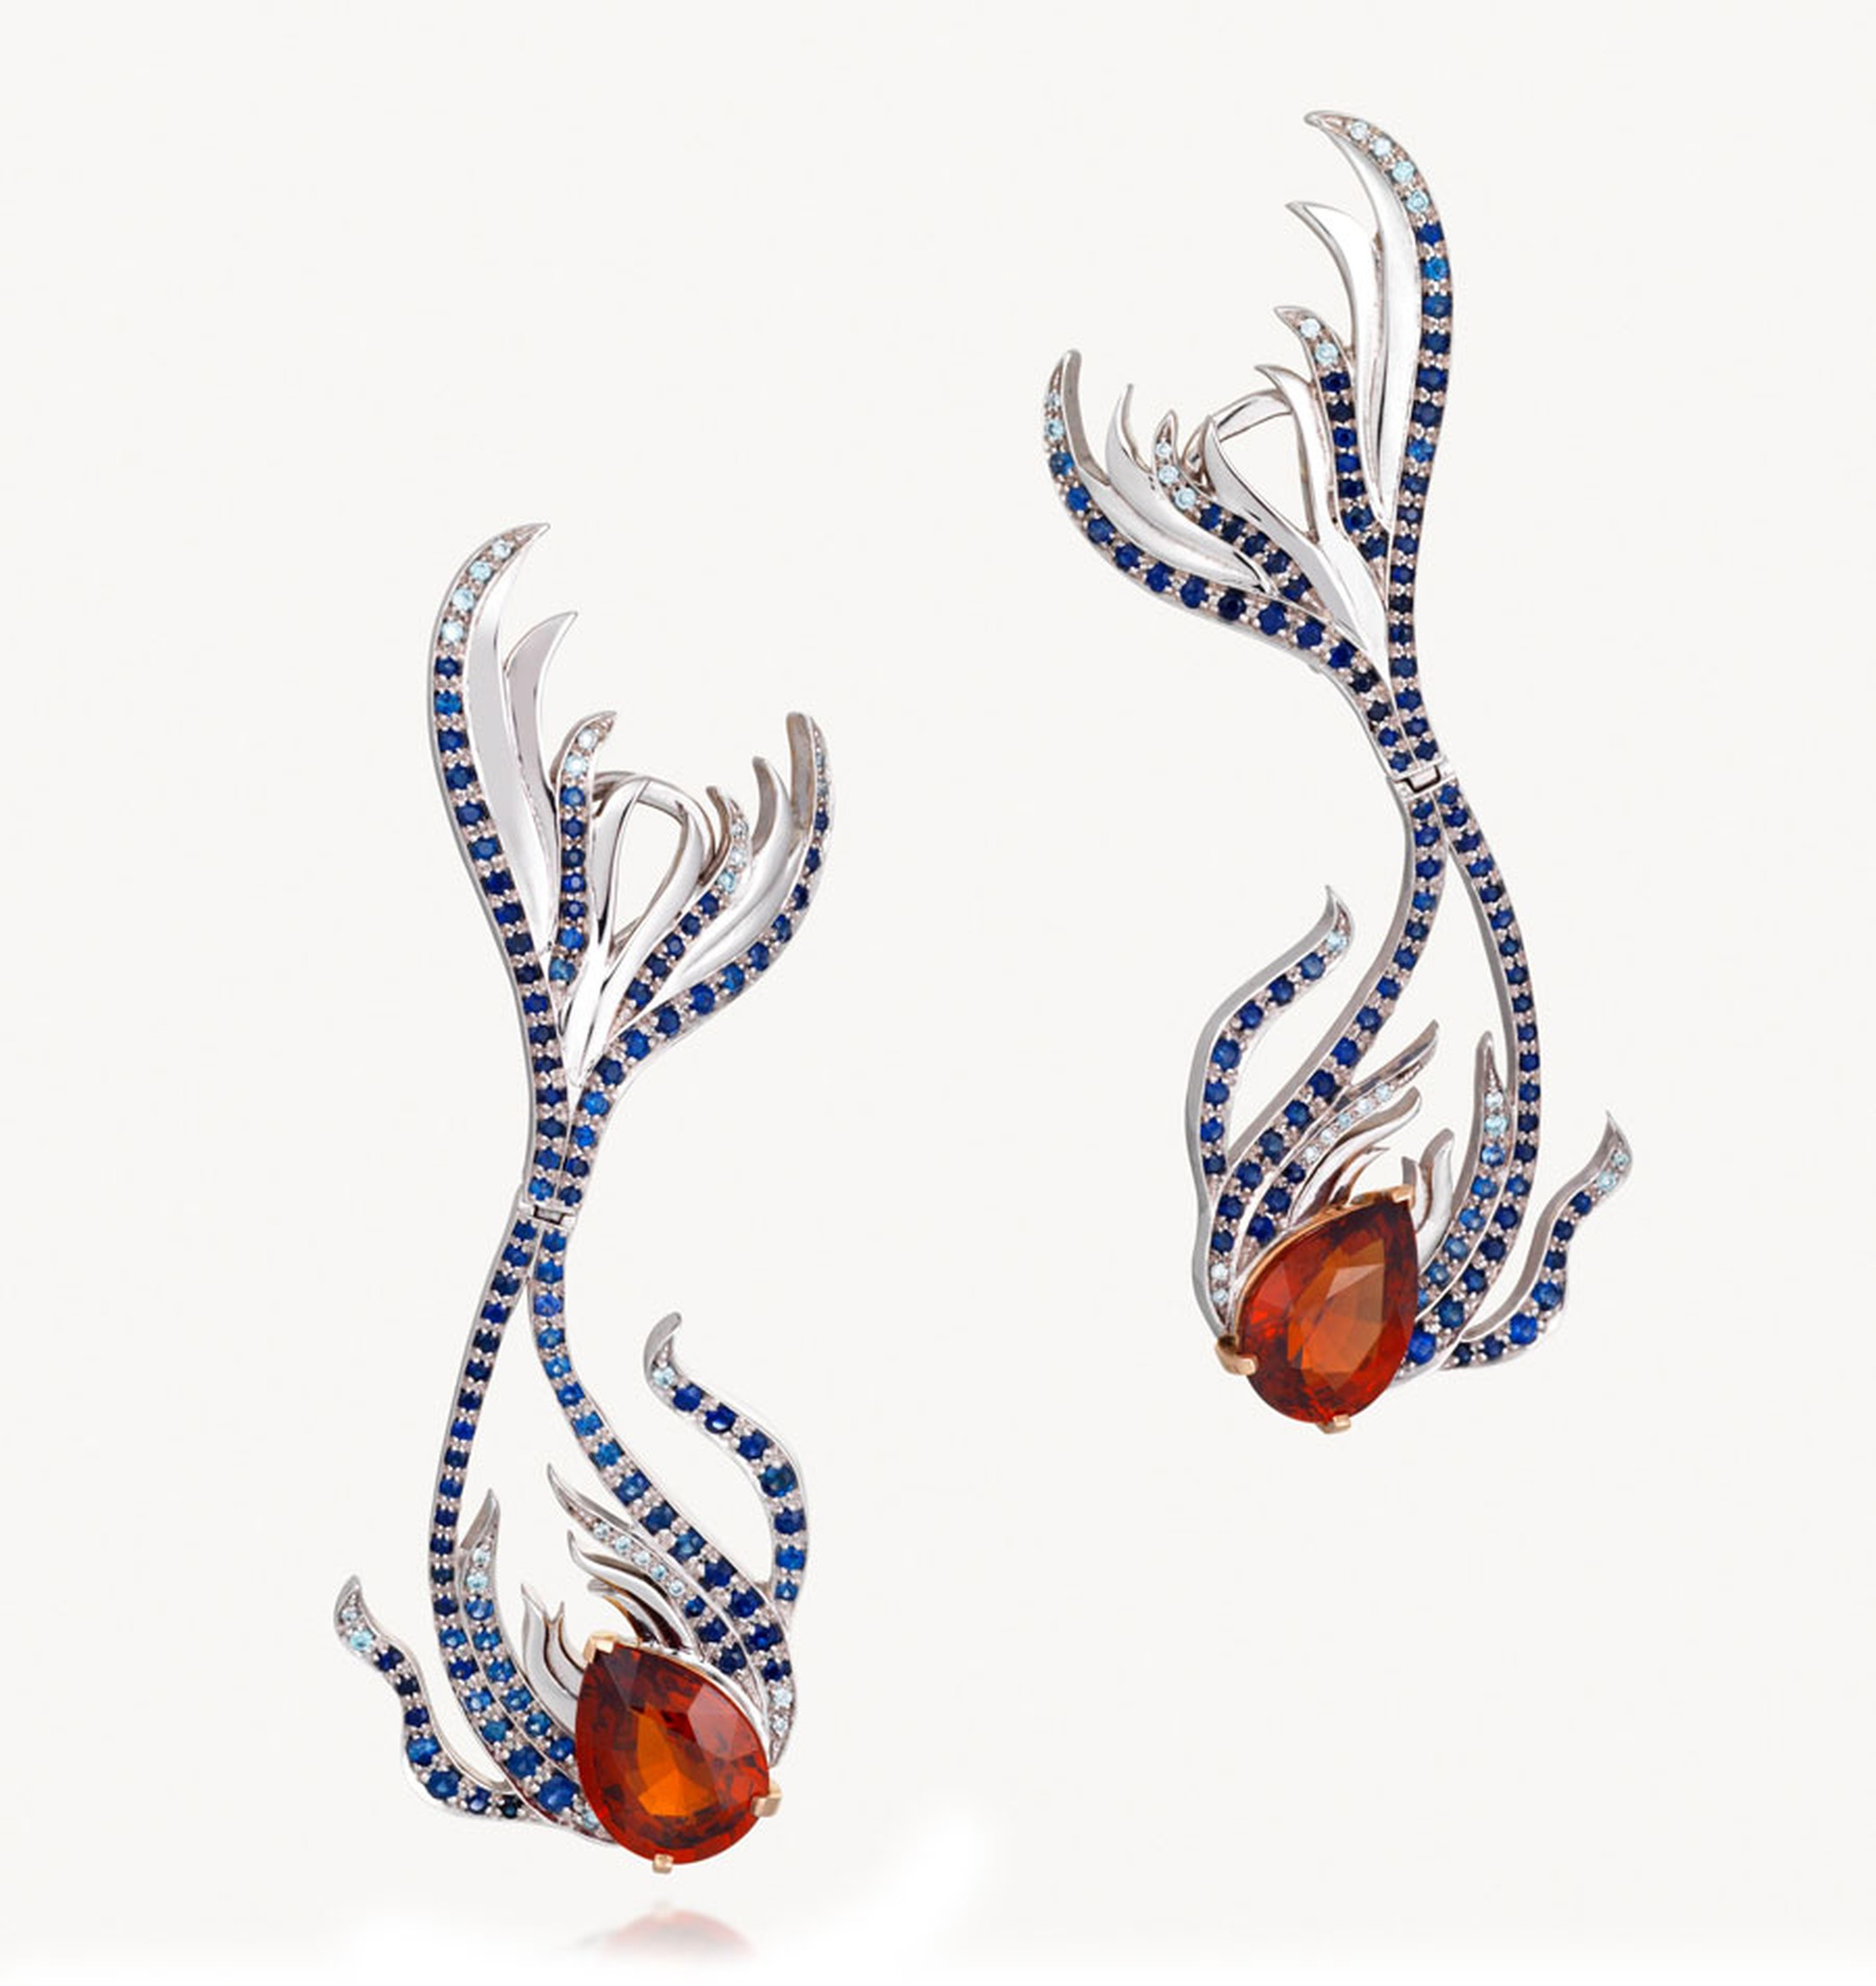 Goldsmiths-Kovanovic-Milena-Sirena-Earrings-18ct-white-and-rose-gold-with-ceyson-blue-sapphires-blue--diamonds-a-spessartine-garnets